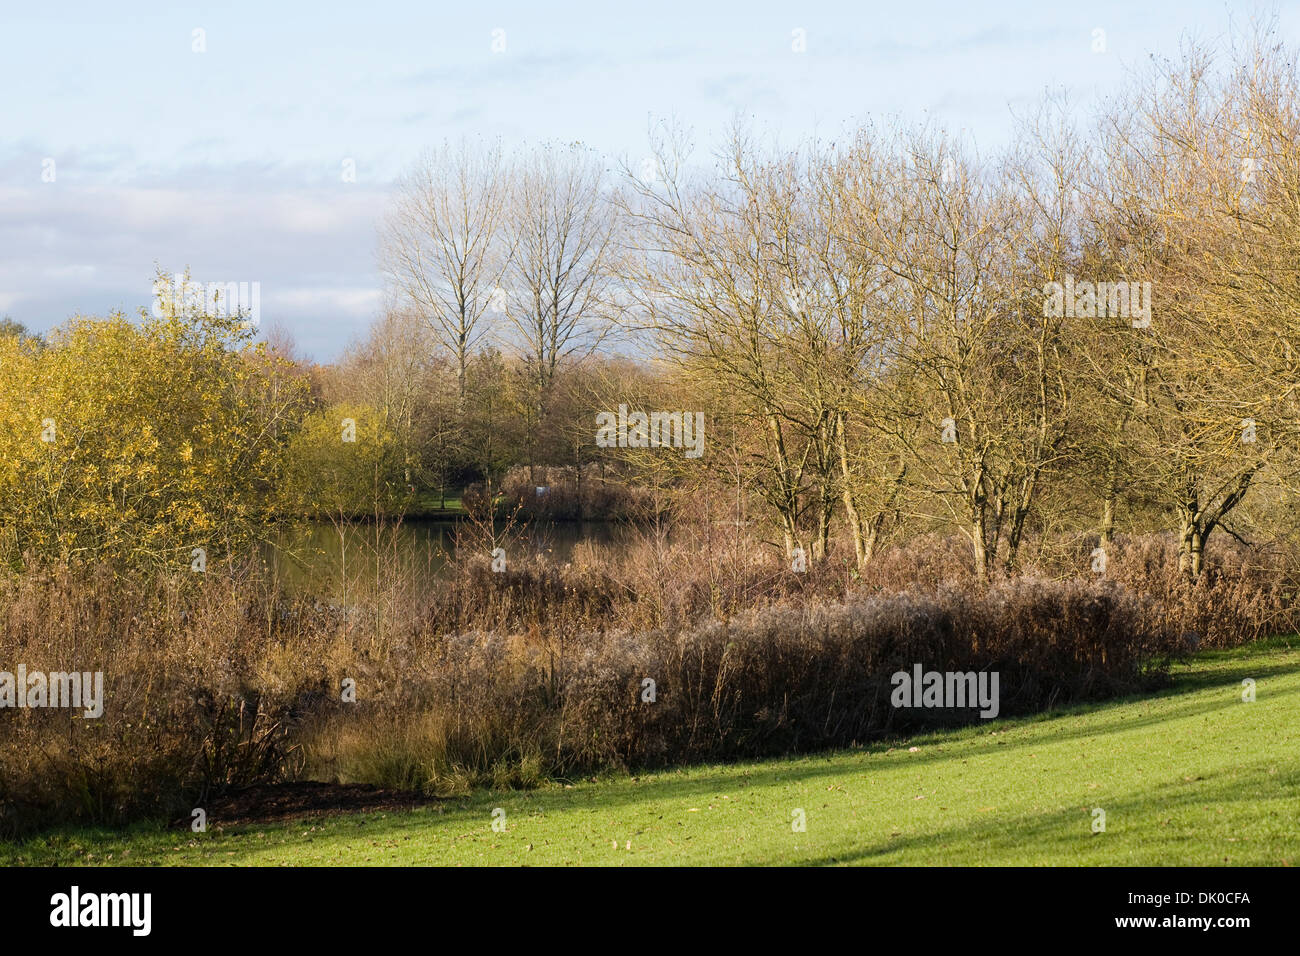 Lake in an English park in late Autumn. - Stock Image